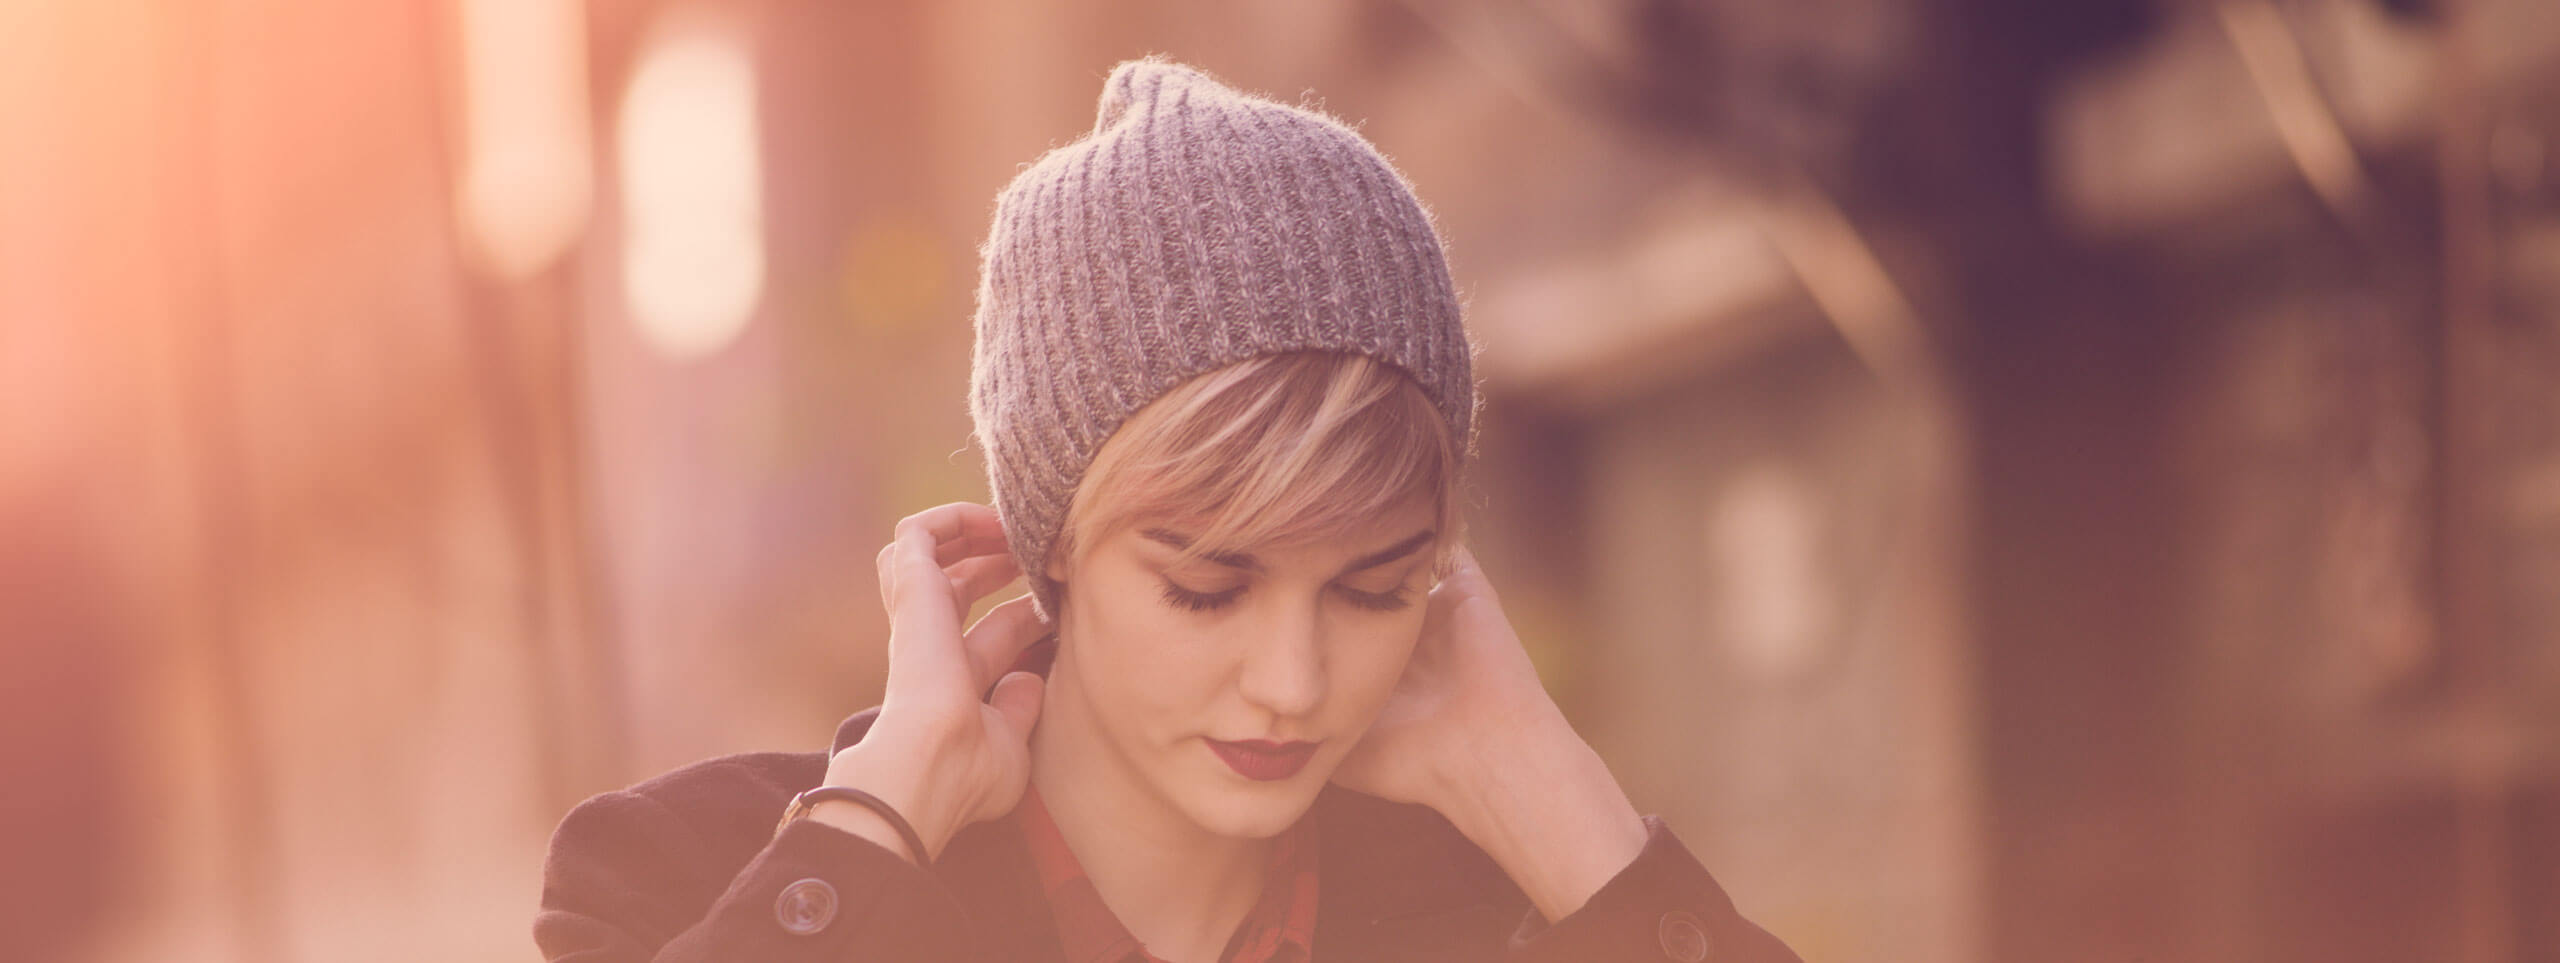 Woman wearing beanie hat with pixie haircut